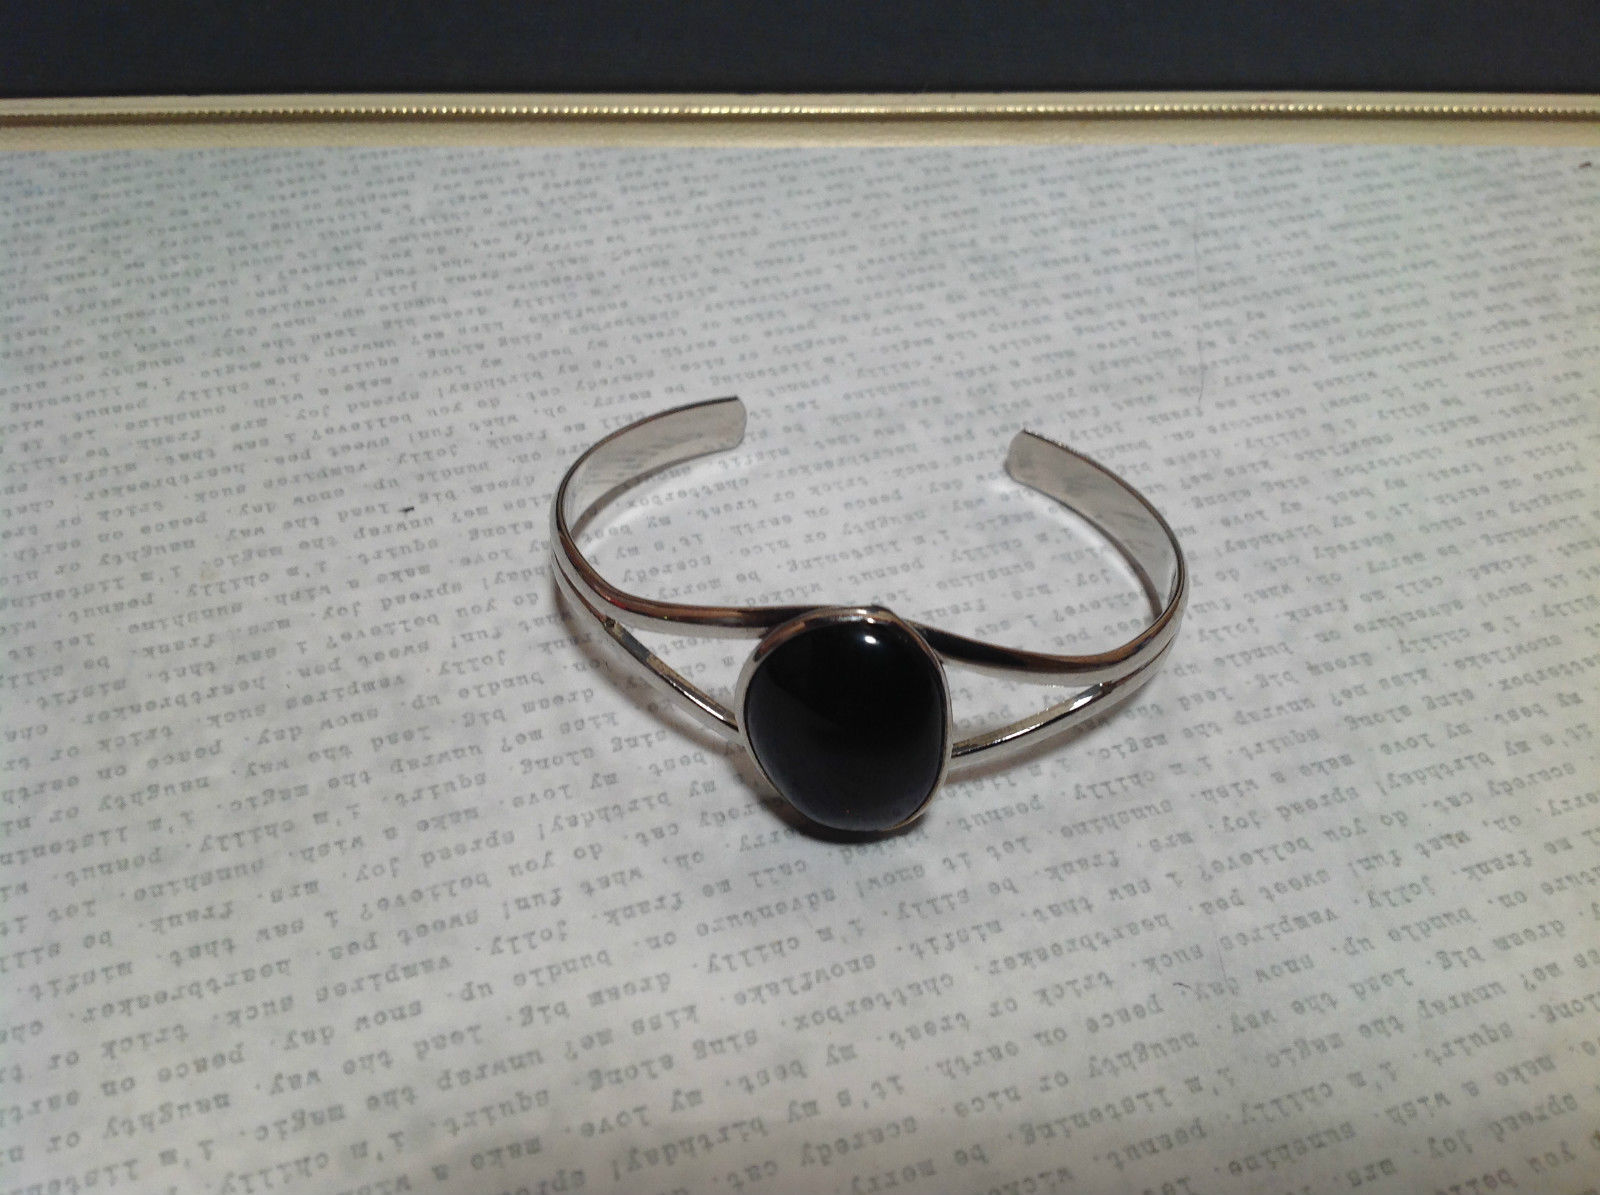 Geo Jewelry Silver Tone Bracelet with Black Oval Shaped Stone